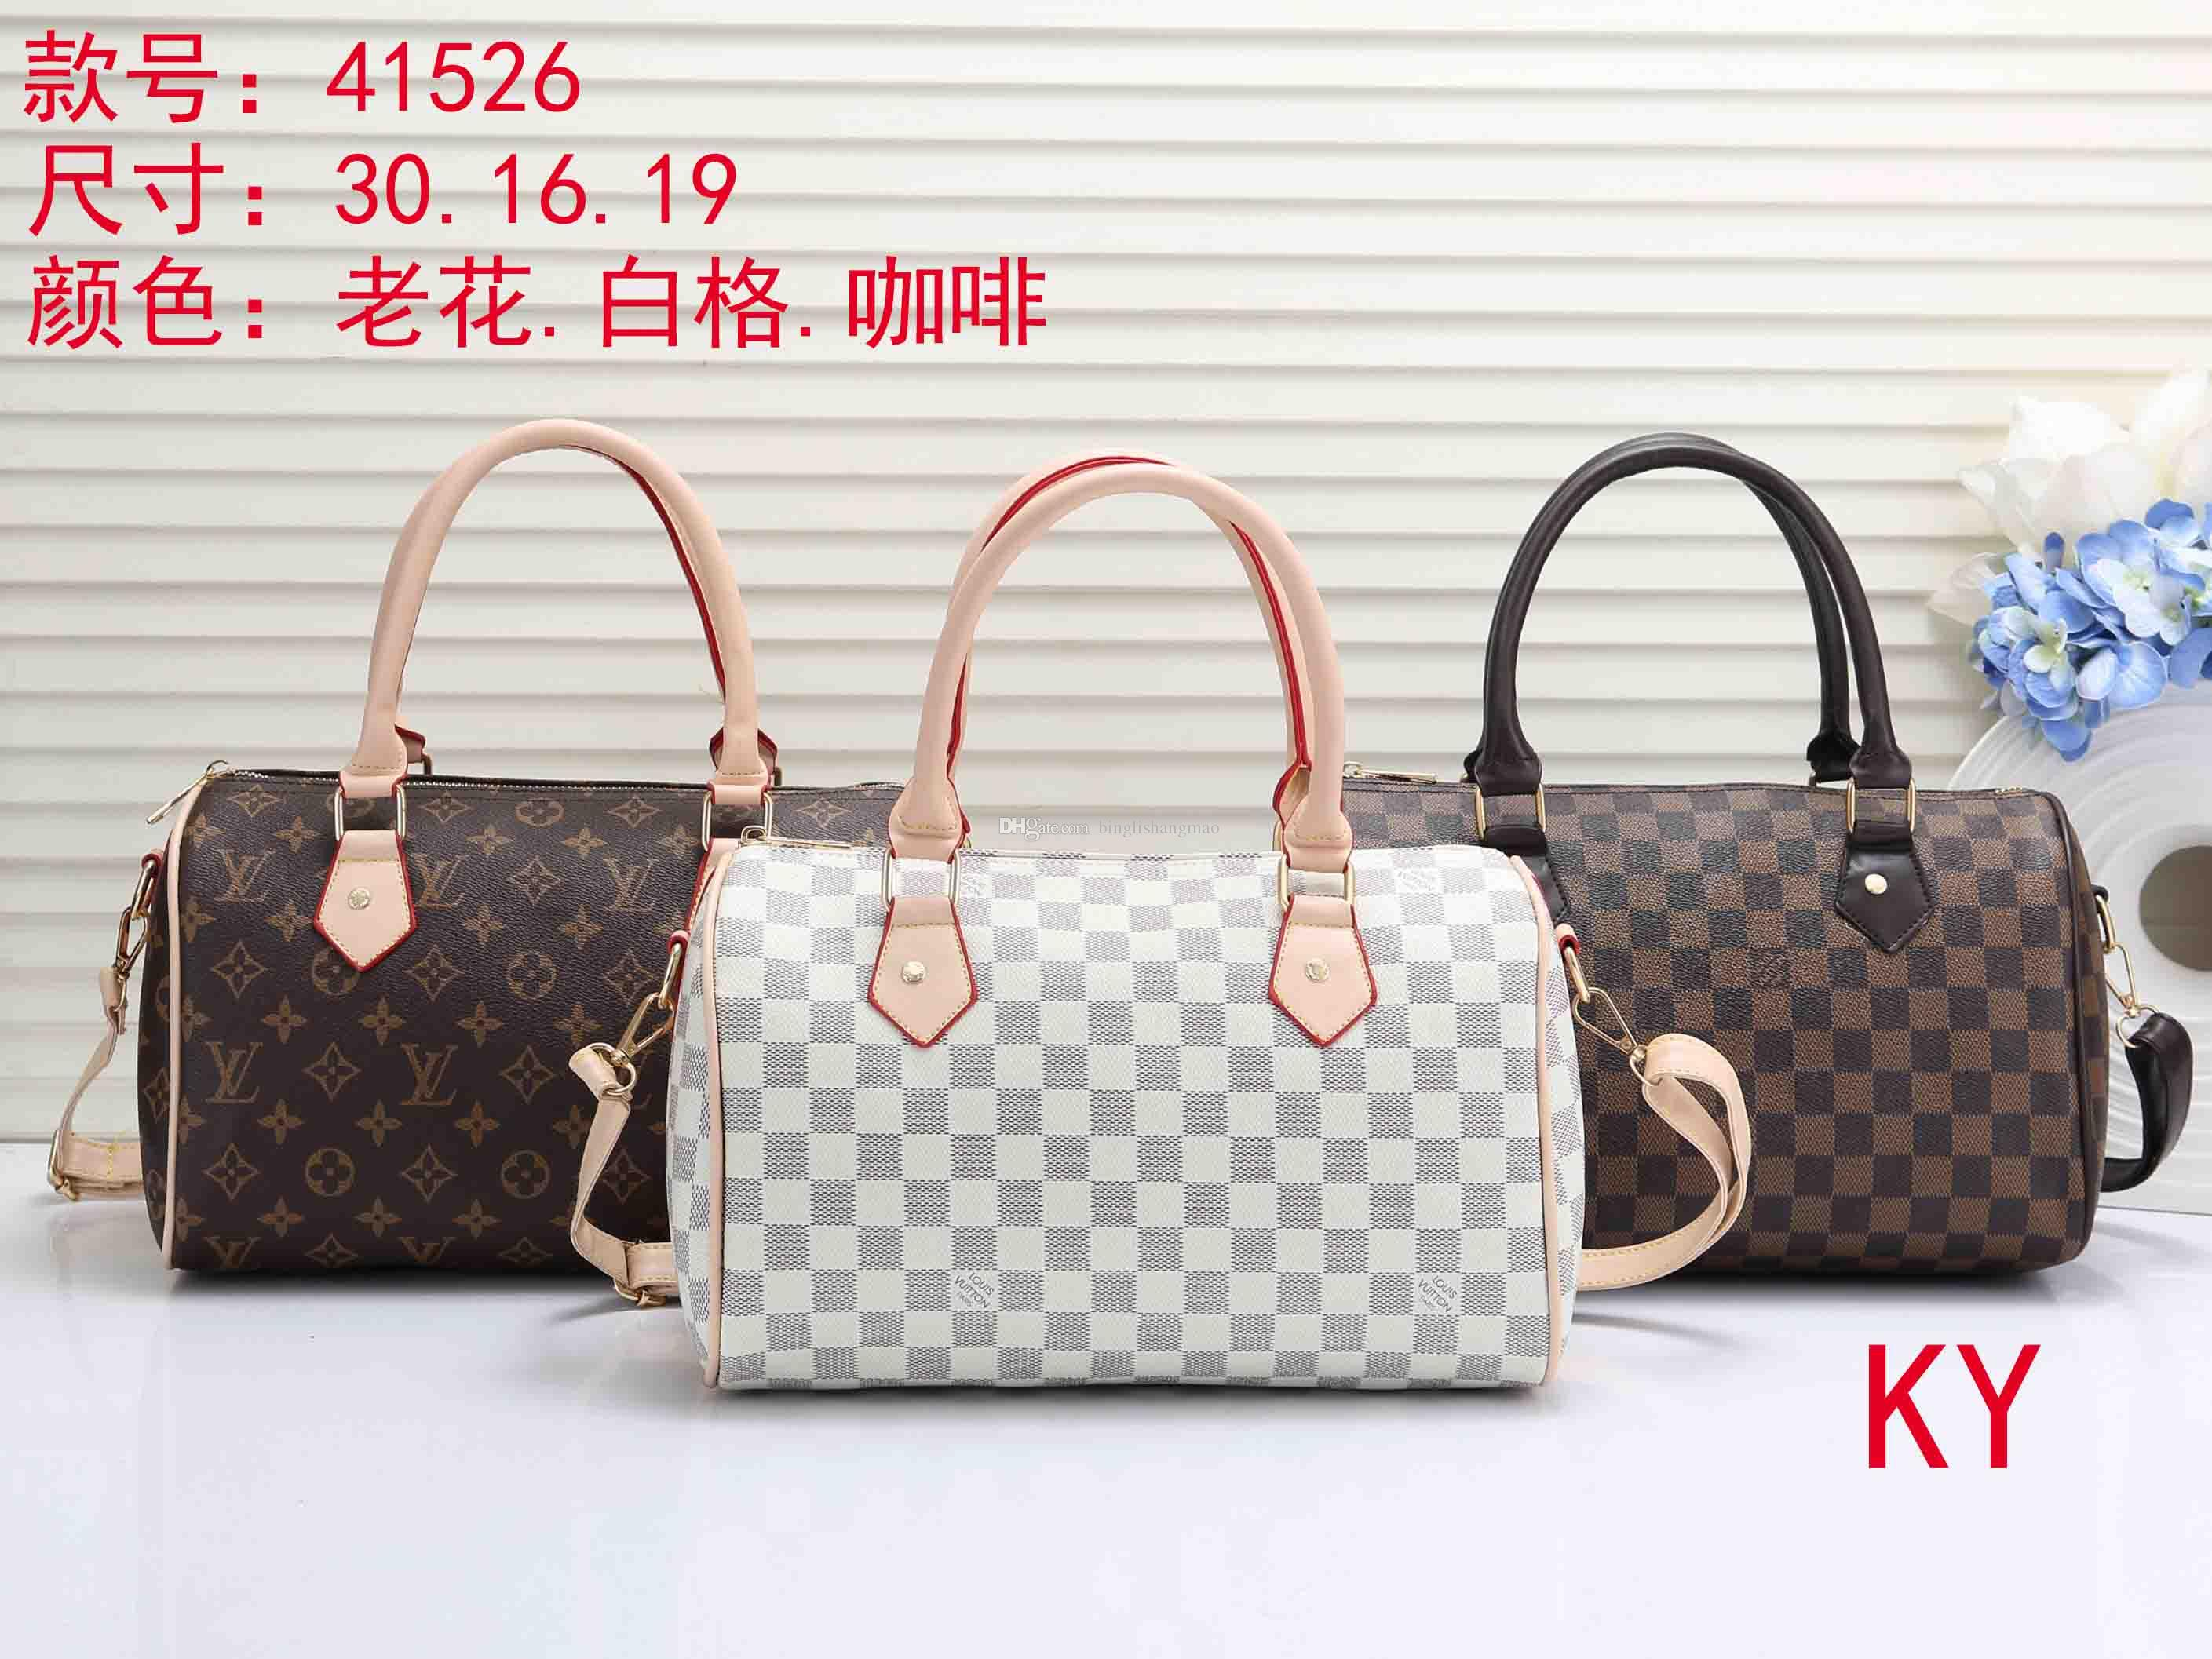 0295c7e43c Mk 41526 Wallet Fashion Bags Spurse Ladies Handbags Designer Bags ...